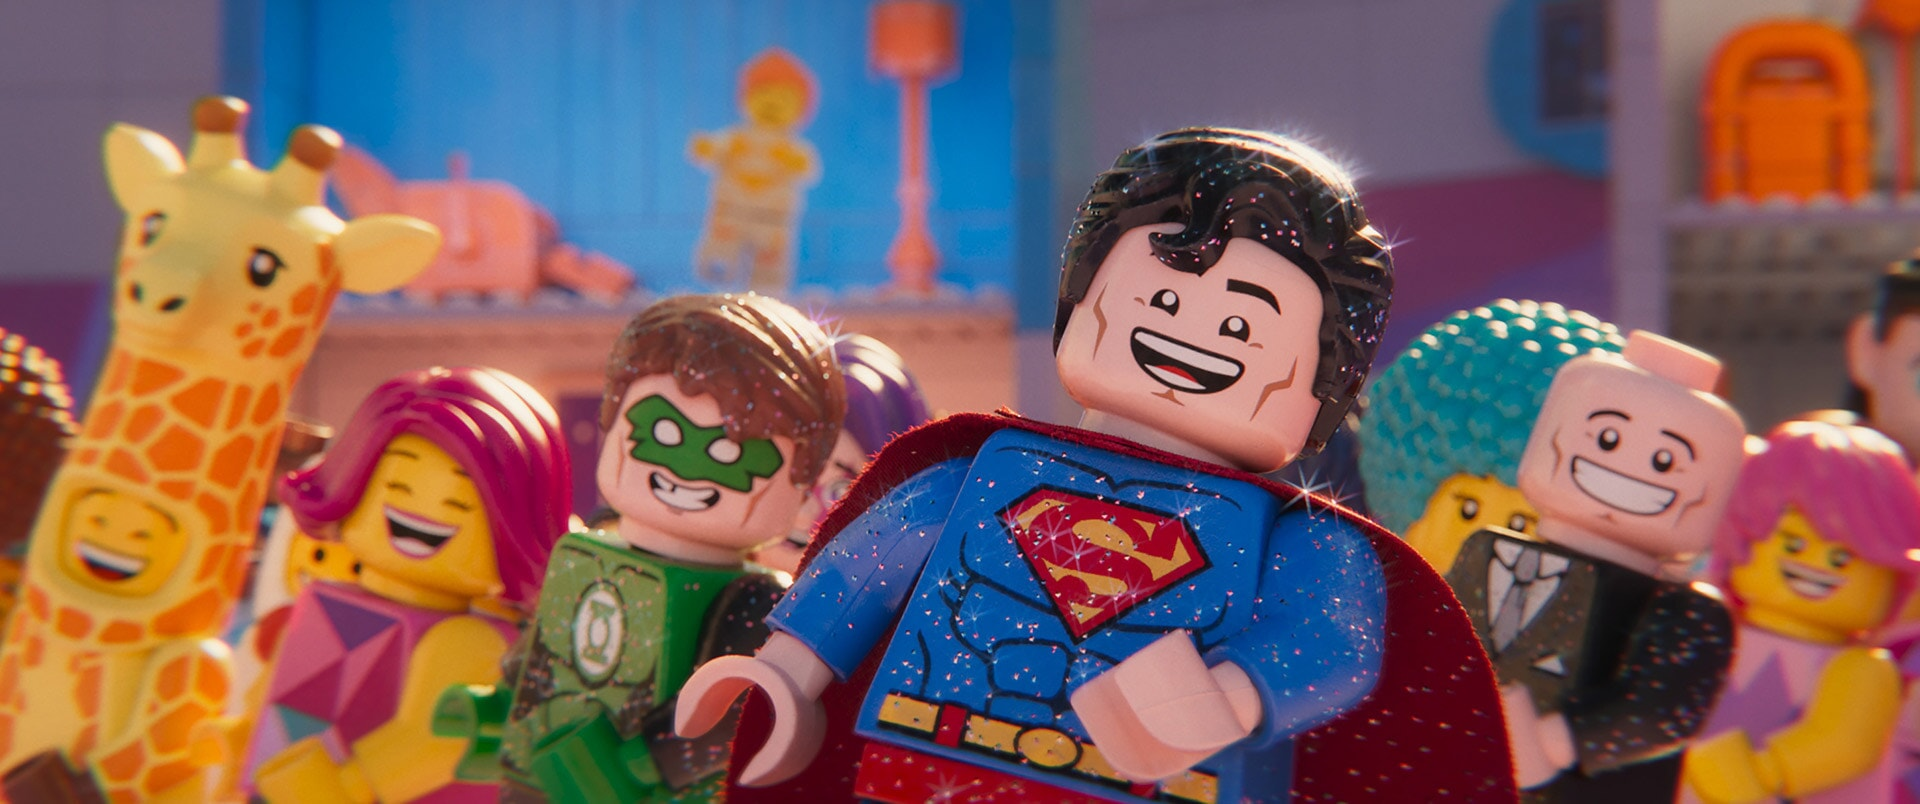 (L-R) Green Lantern (JONAH HILL), Superman (CHANNING TATUM) and Lex Luthor (IKE BARINHOLTZ)